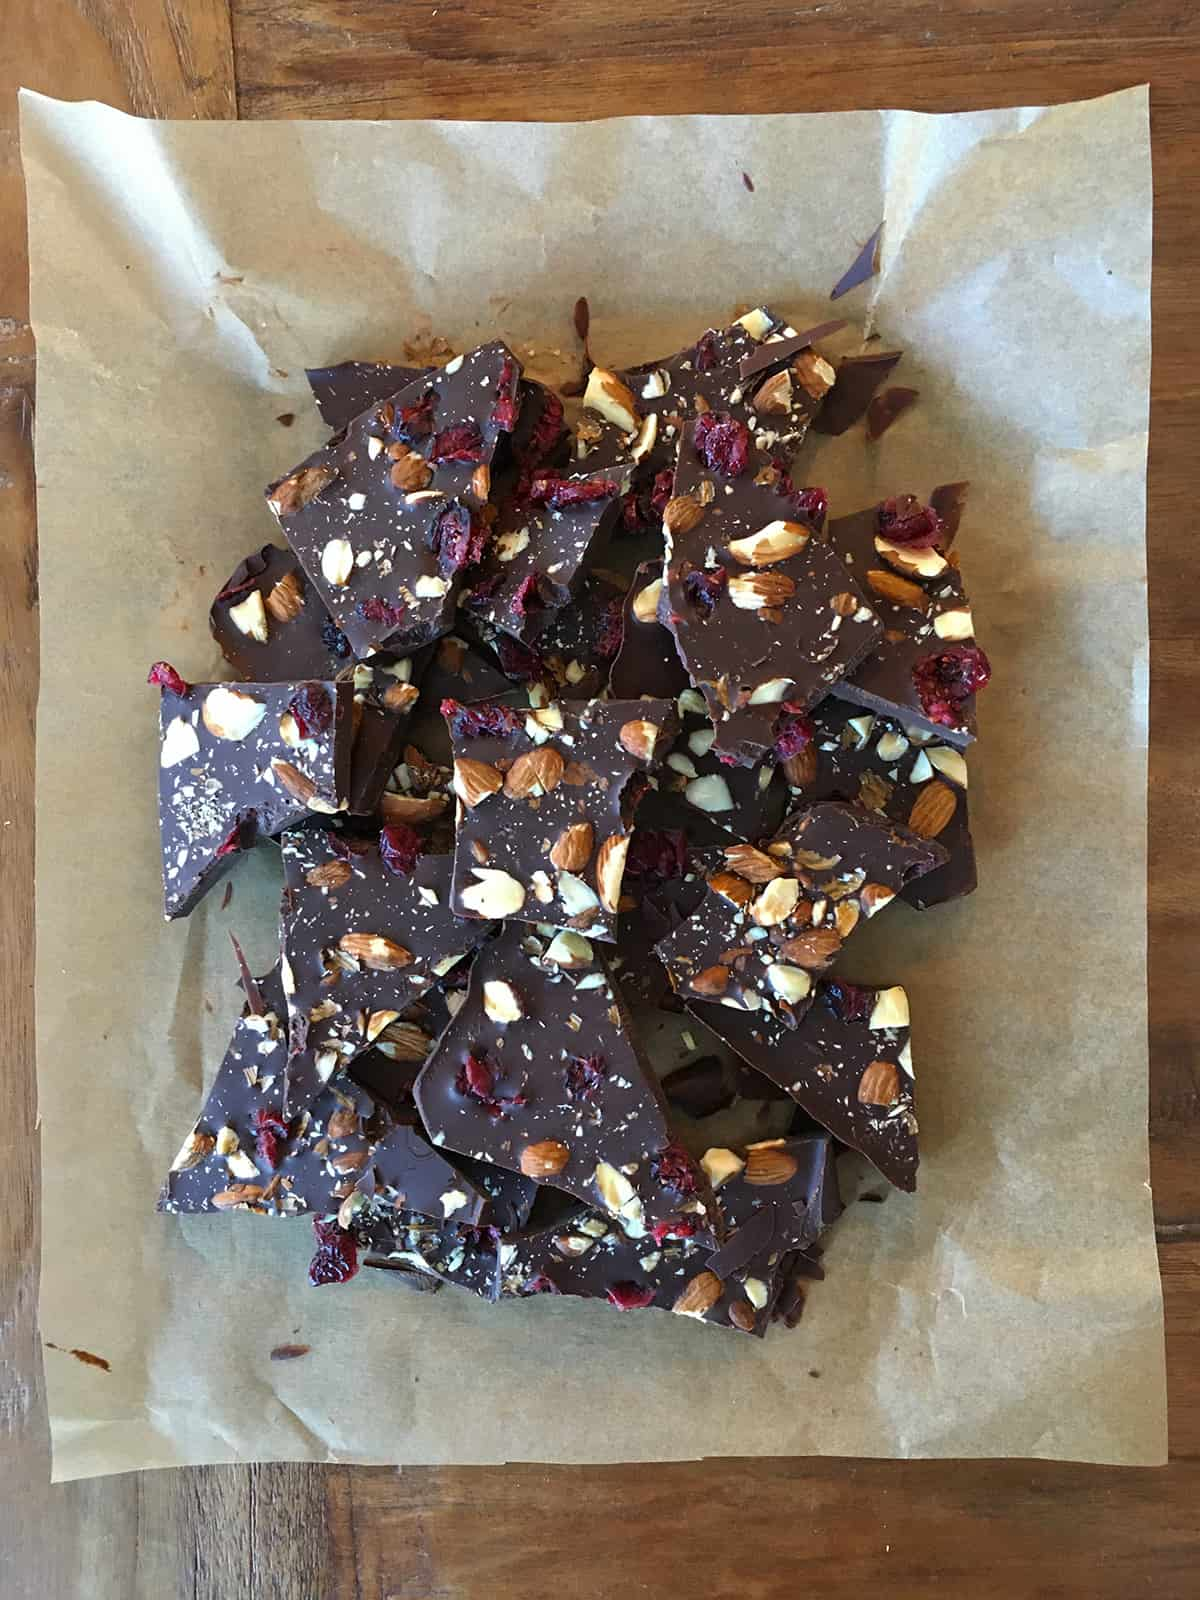 Chocolate bark with almonds, dried cranberries and sea salt on parchment paper